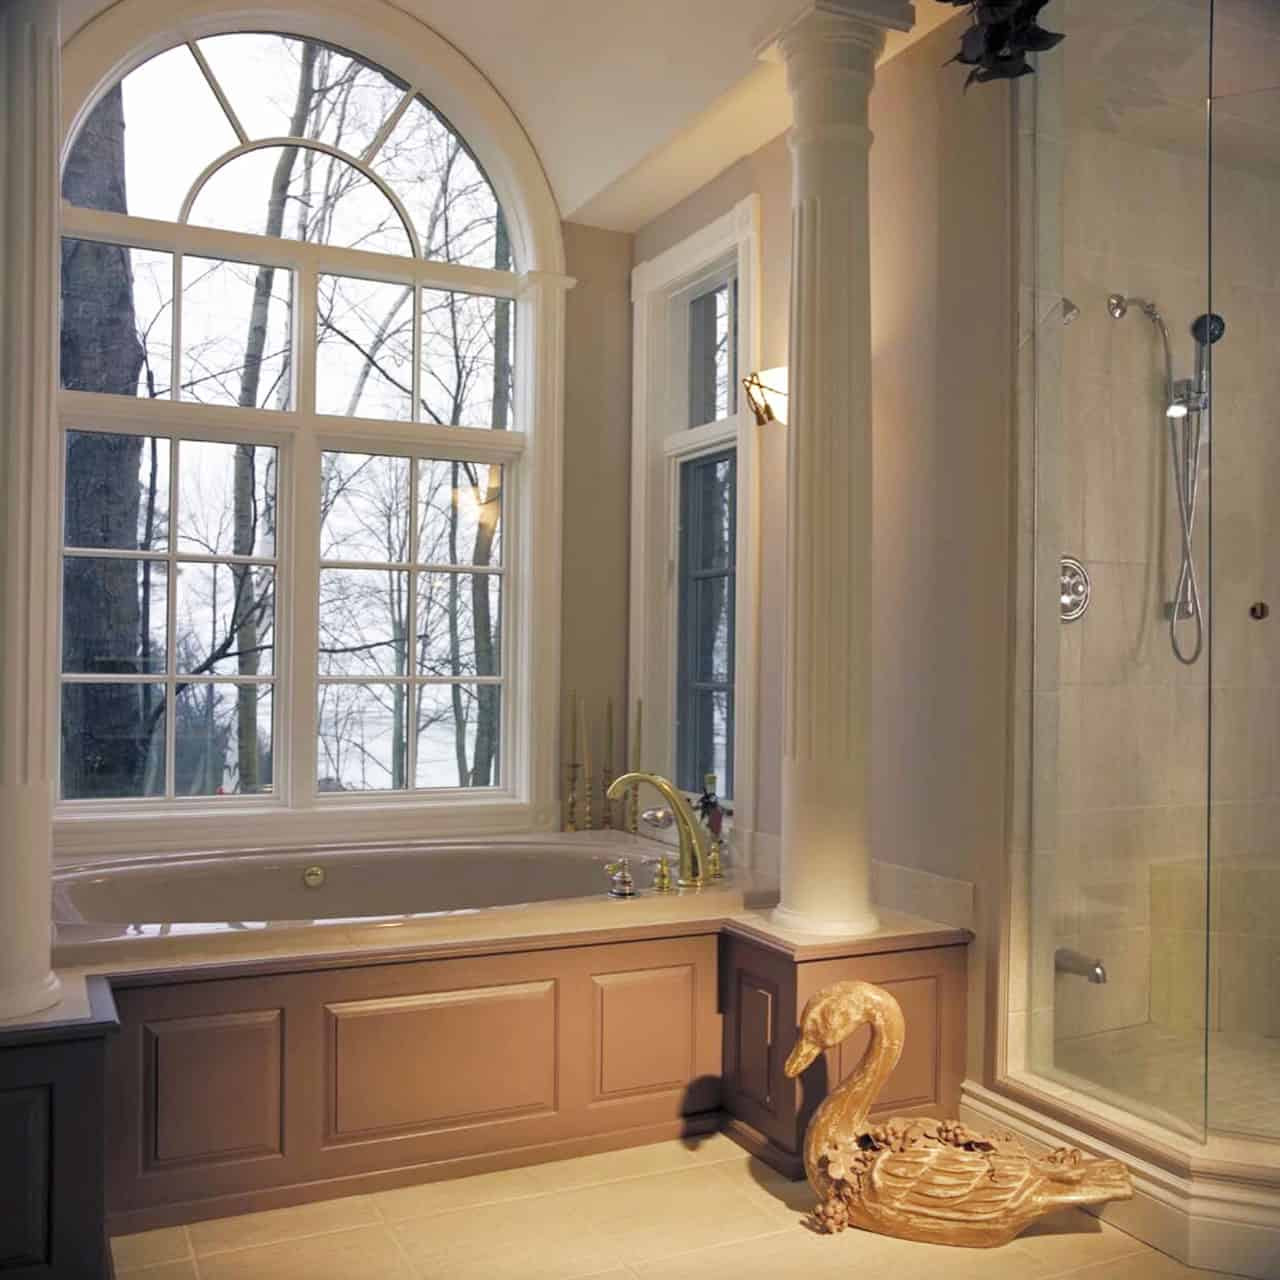 Interior design 2017: Victorian bathroom - HOUSE INTERIOR